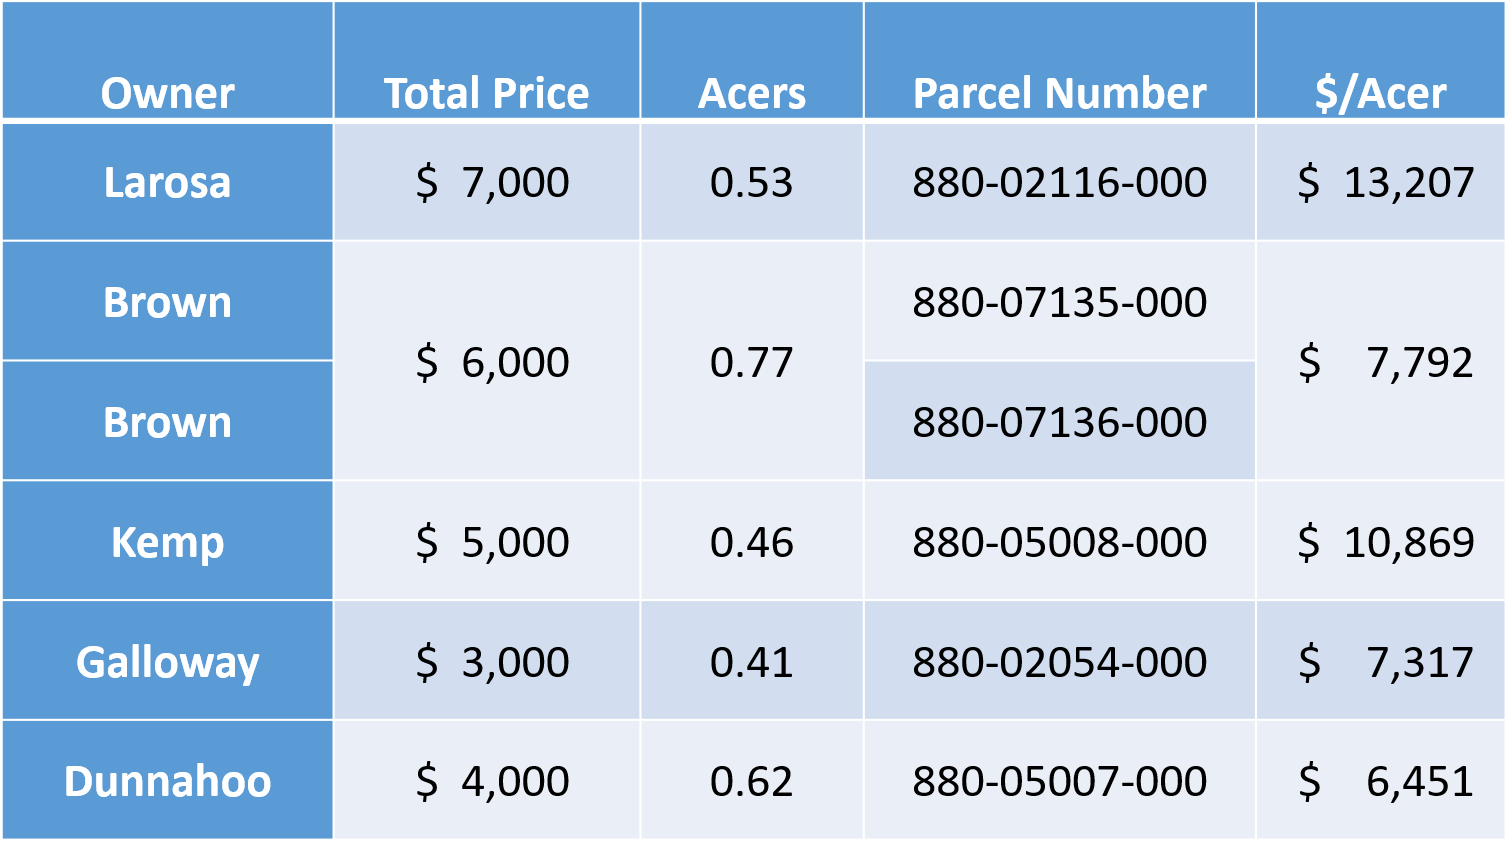 comparable Parcels to the Kemp property